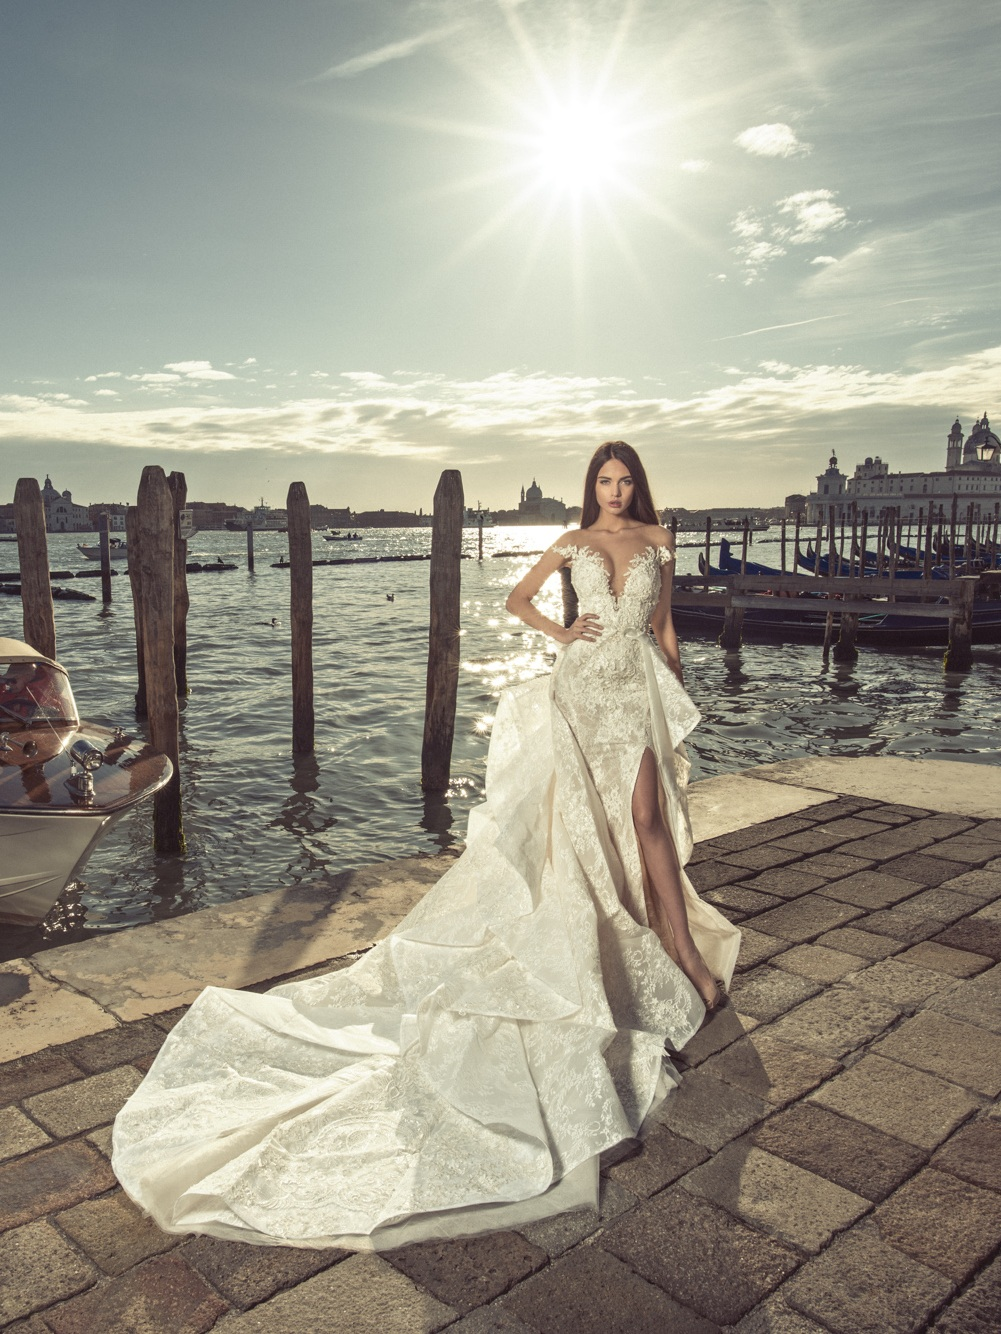 Venice 08 - Fitted two piece lace wedding gown with an illusion off the shoulder neckline and complete low illusion back. Features a pearl embellished plunge neckline with option of detachable textured train.